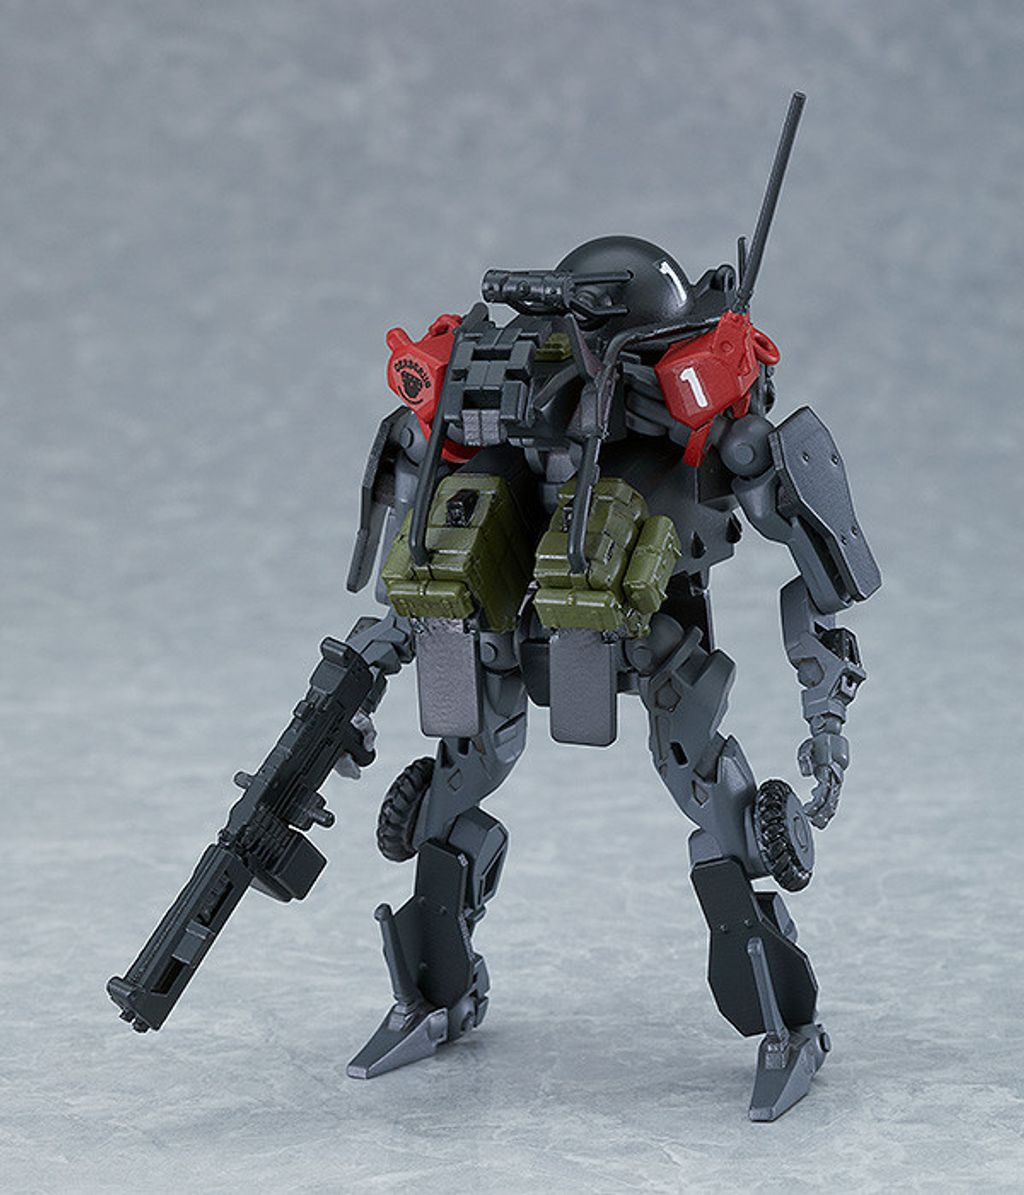 MODEROID 1-35 PMC Cerberus Security Services EXOFRAME.jpg